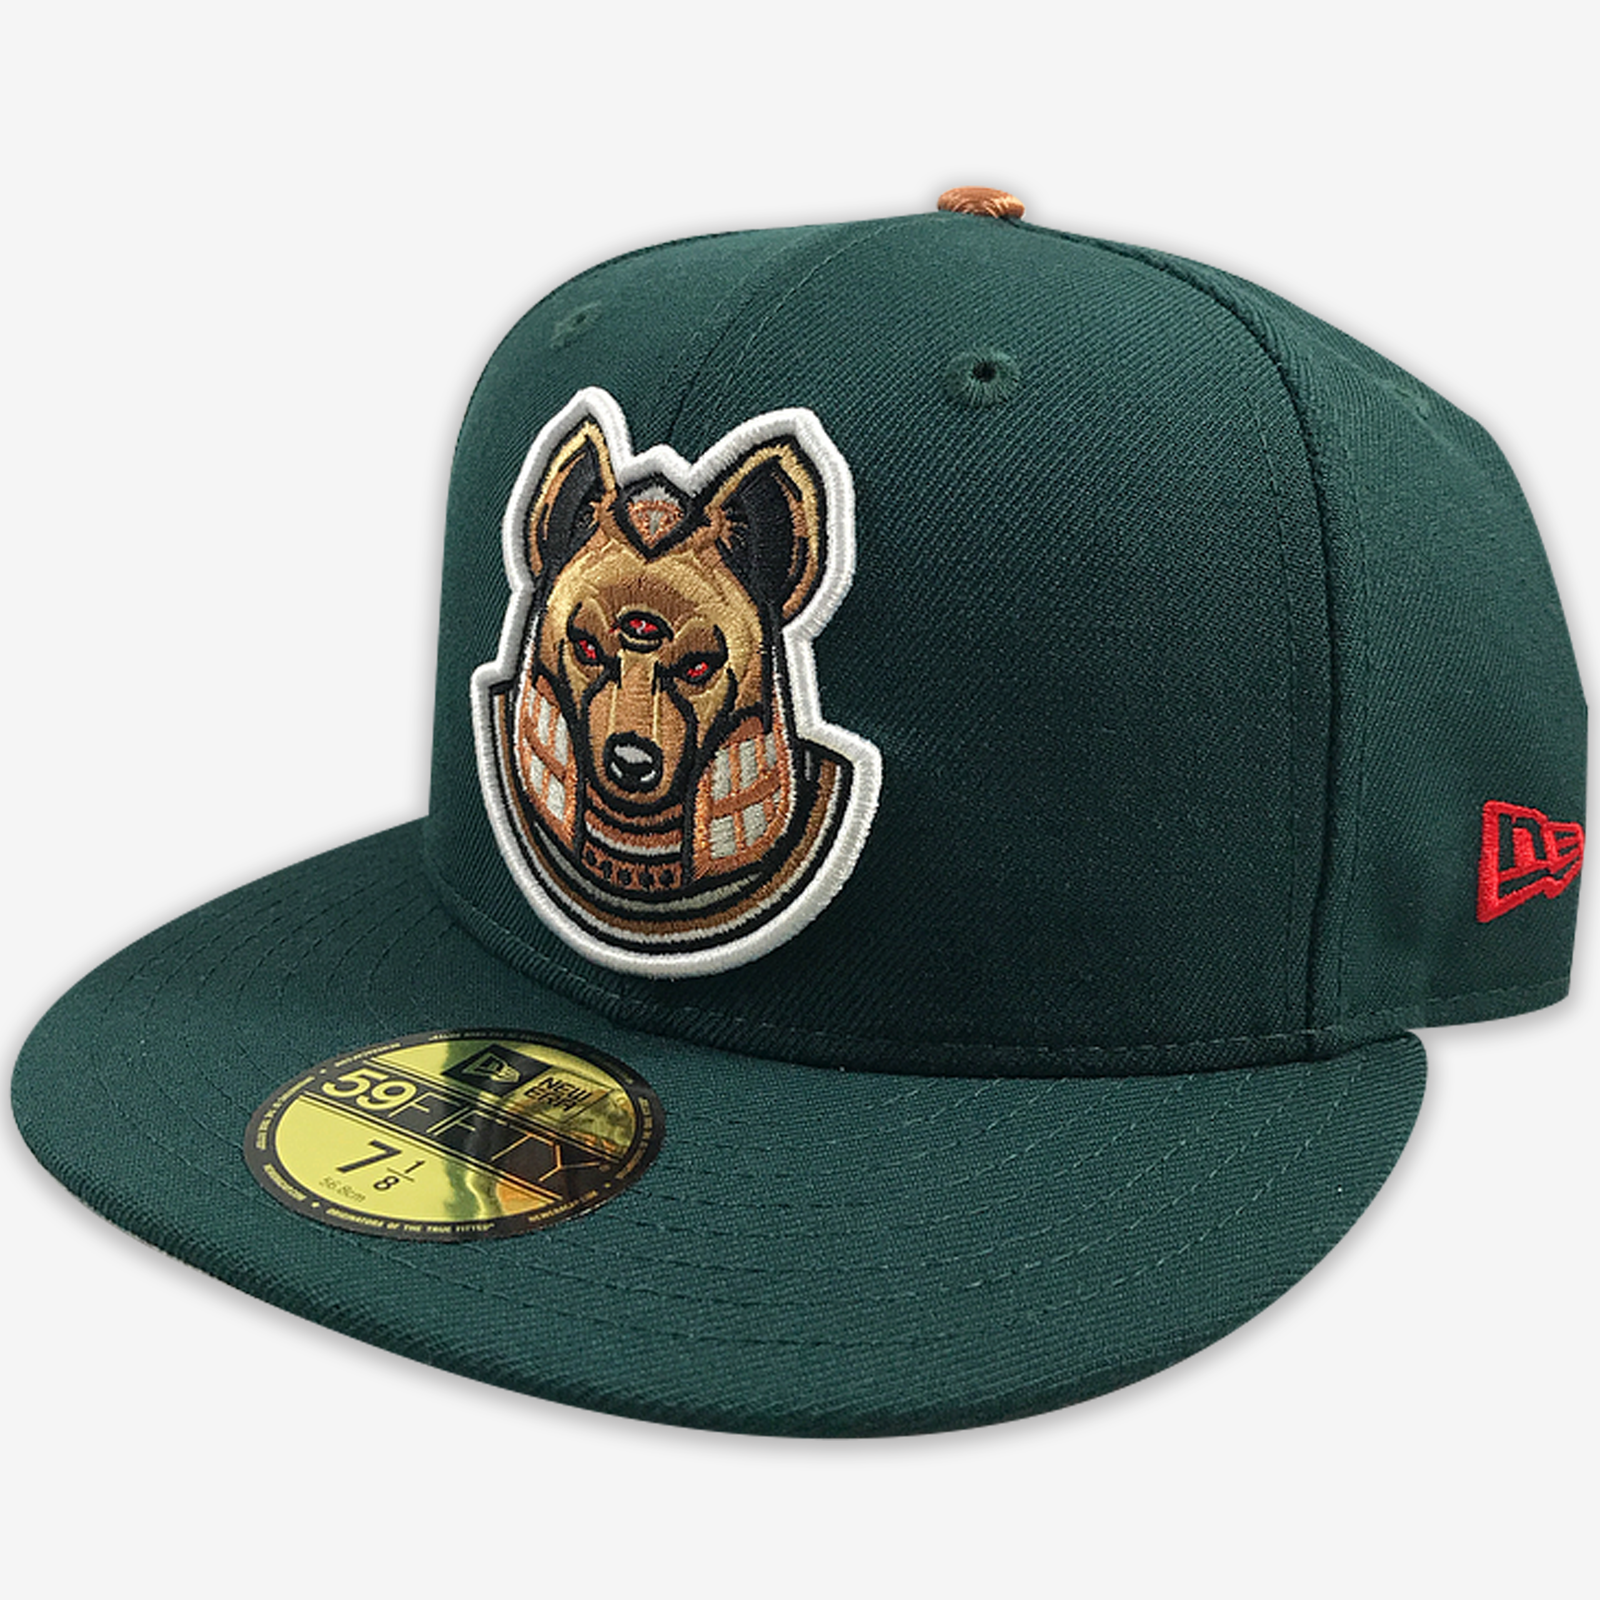 AOF Anpu (Anubis) Green New Era Fitted